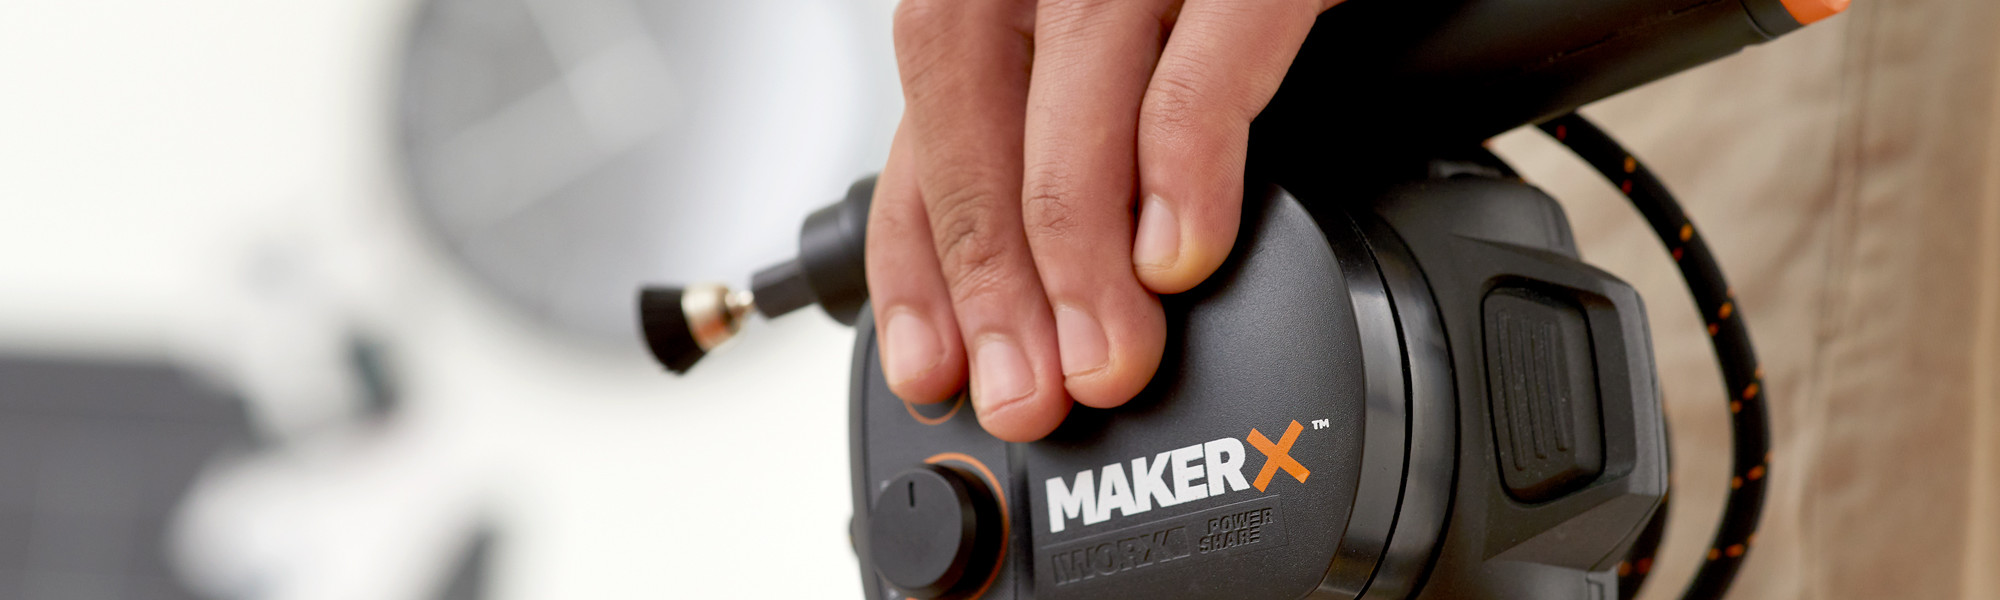 Product photography a WORX hand tool